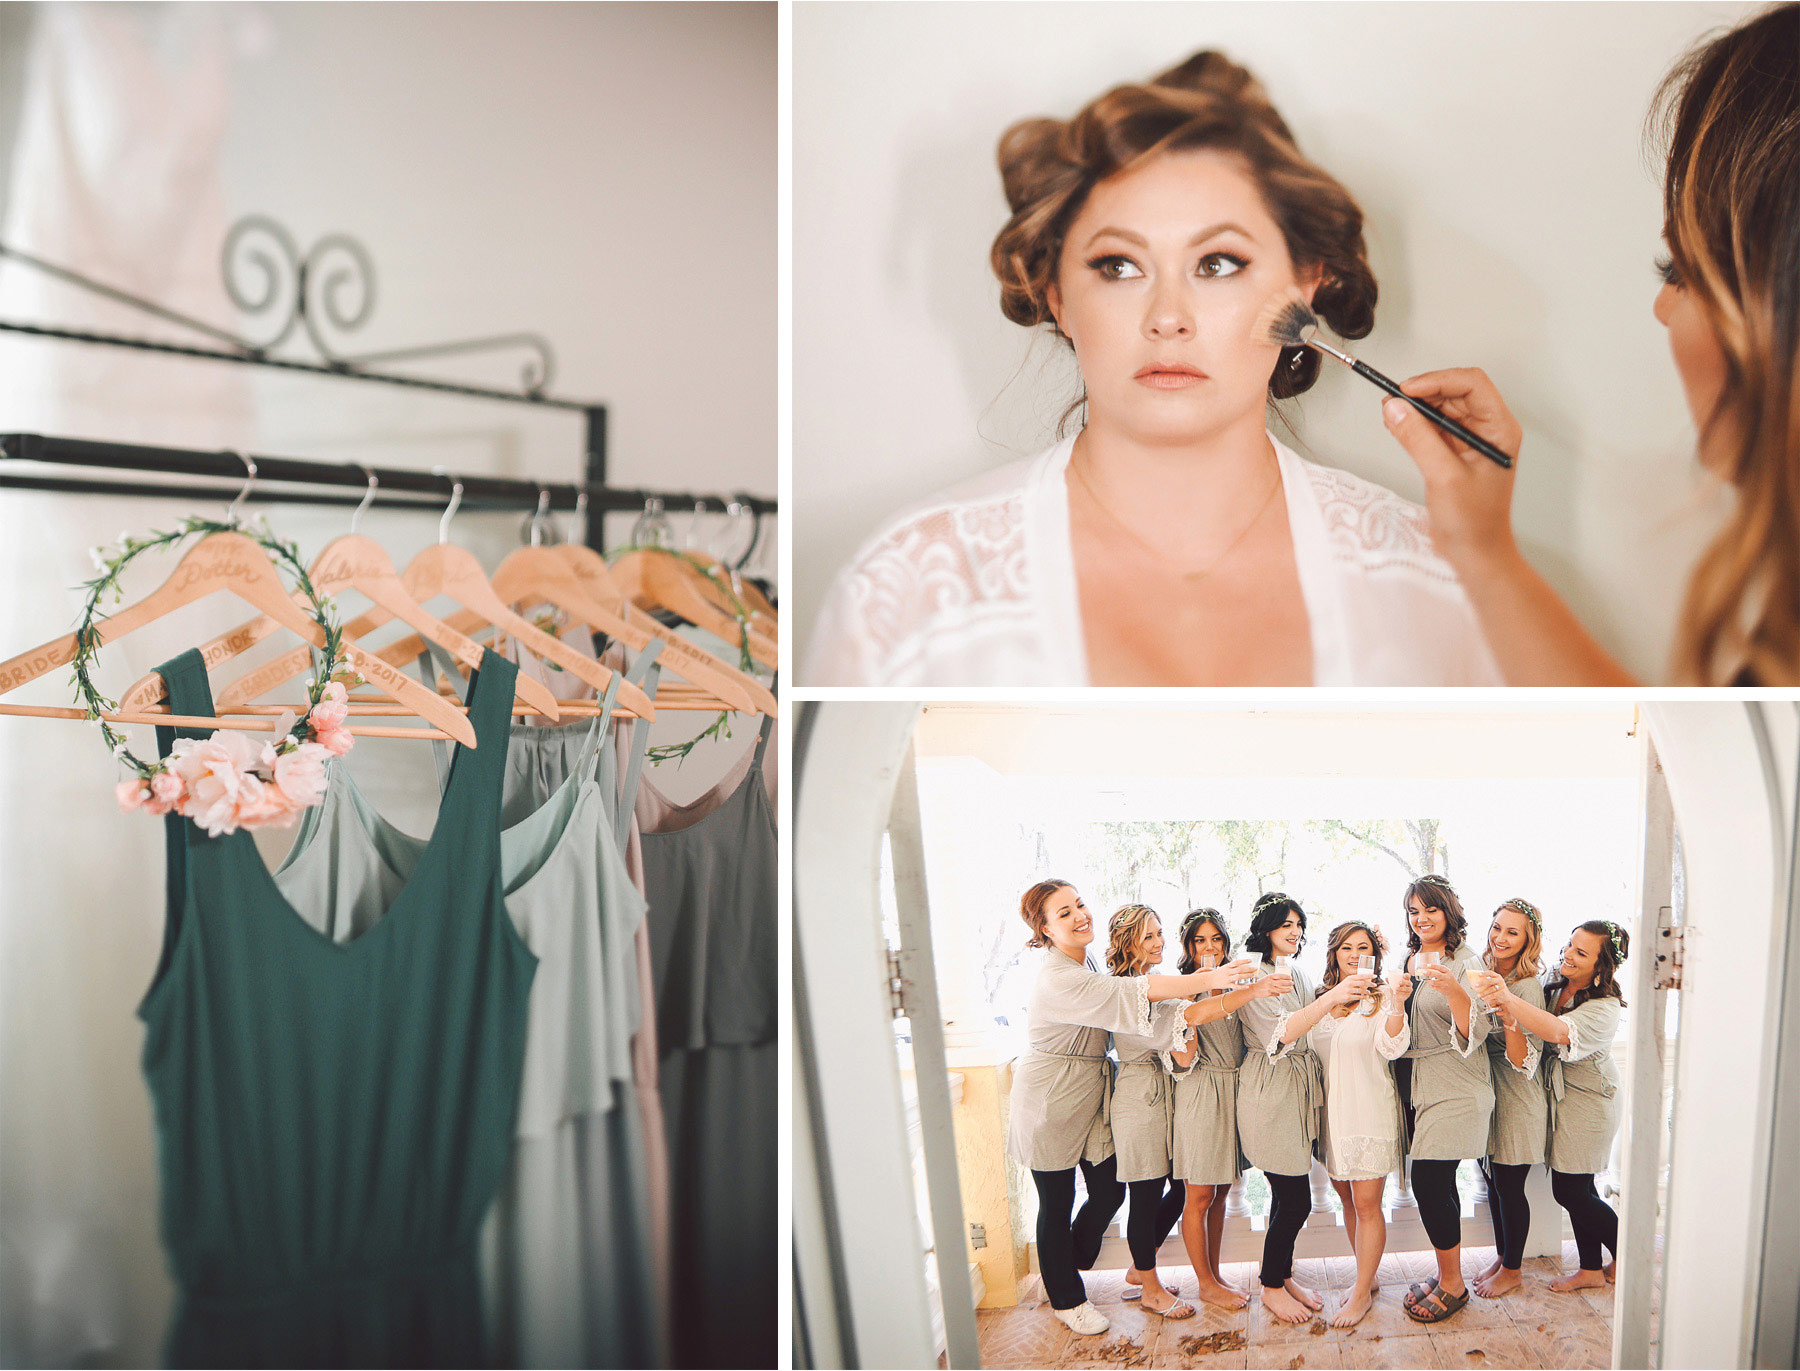 02-Brandon-Florida-Wedding-Photographer-by-Andrew-Vick-Photography-Casa-Lantana-Spring-Getting-Ready-Bride-Bridesmaids-Makeup-Dress-Champage-Flower-Crown-Hangers-Vintage-Kristianna-and-Ben.jpg